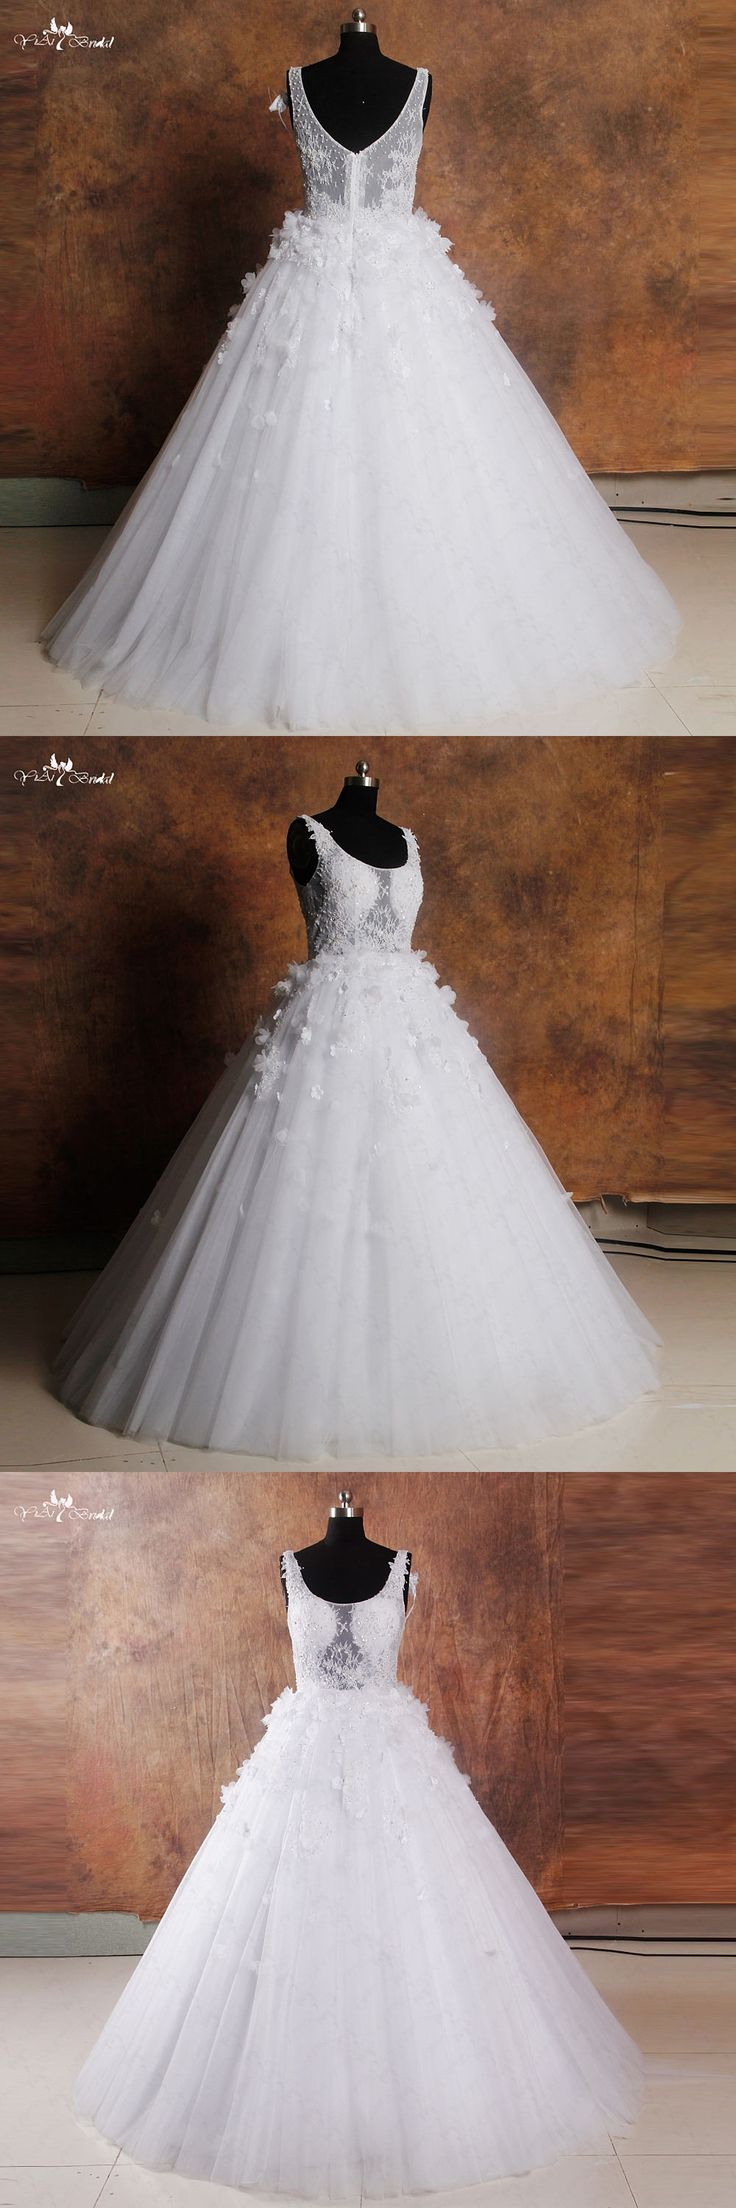 RSW1002 2017 Newest Flowers Real Photo Sexy Backless White Maternity Ball Gown Country Western Wedding Dresses Lace